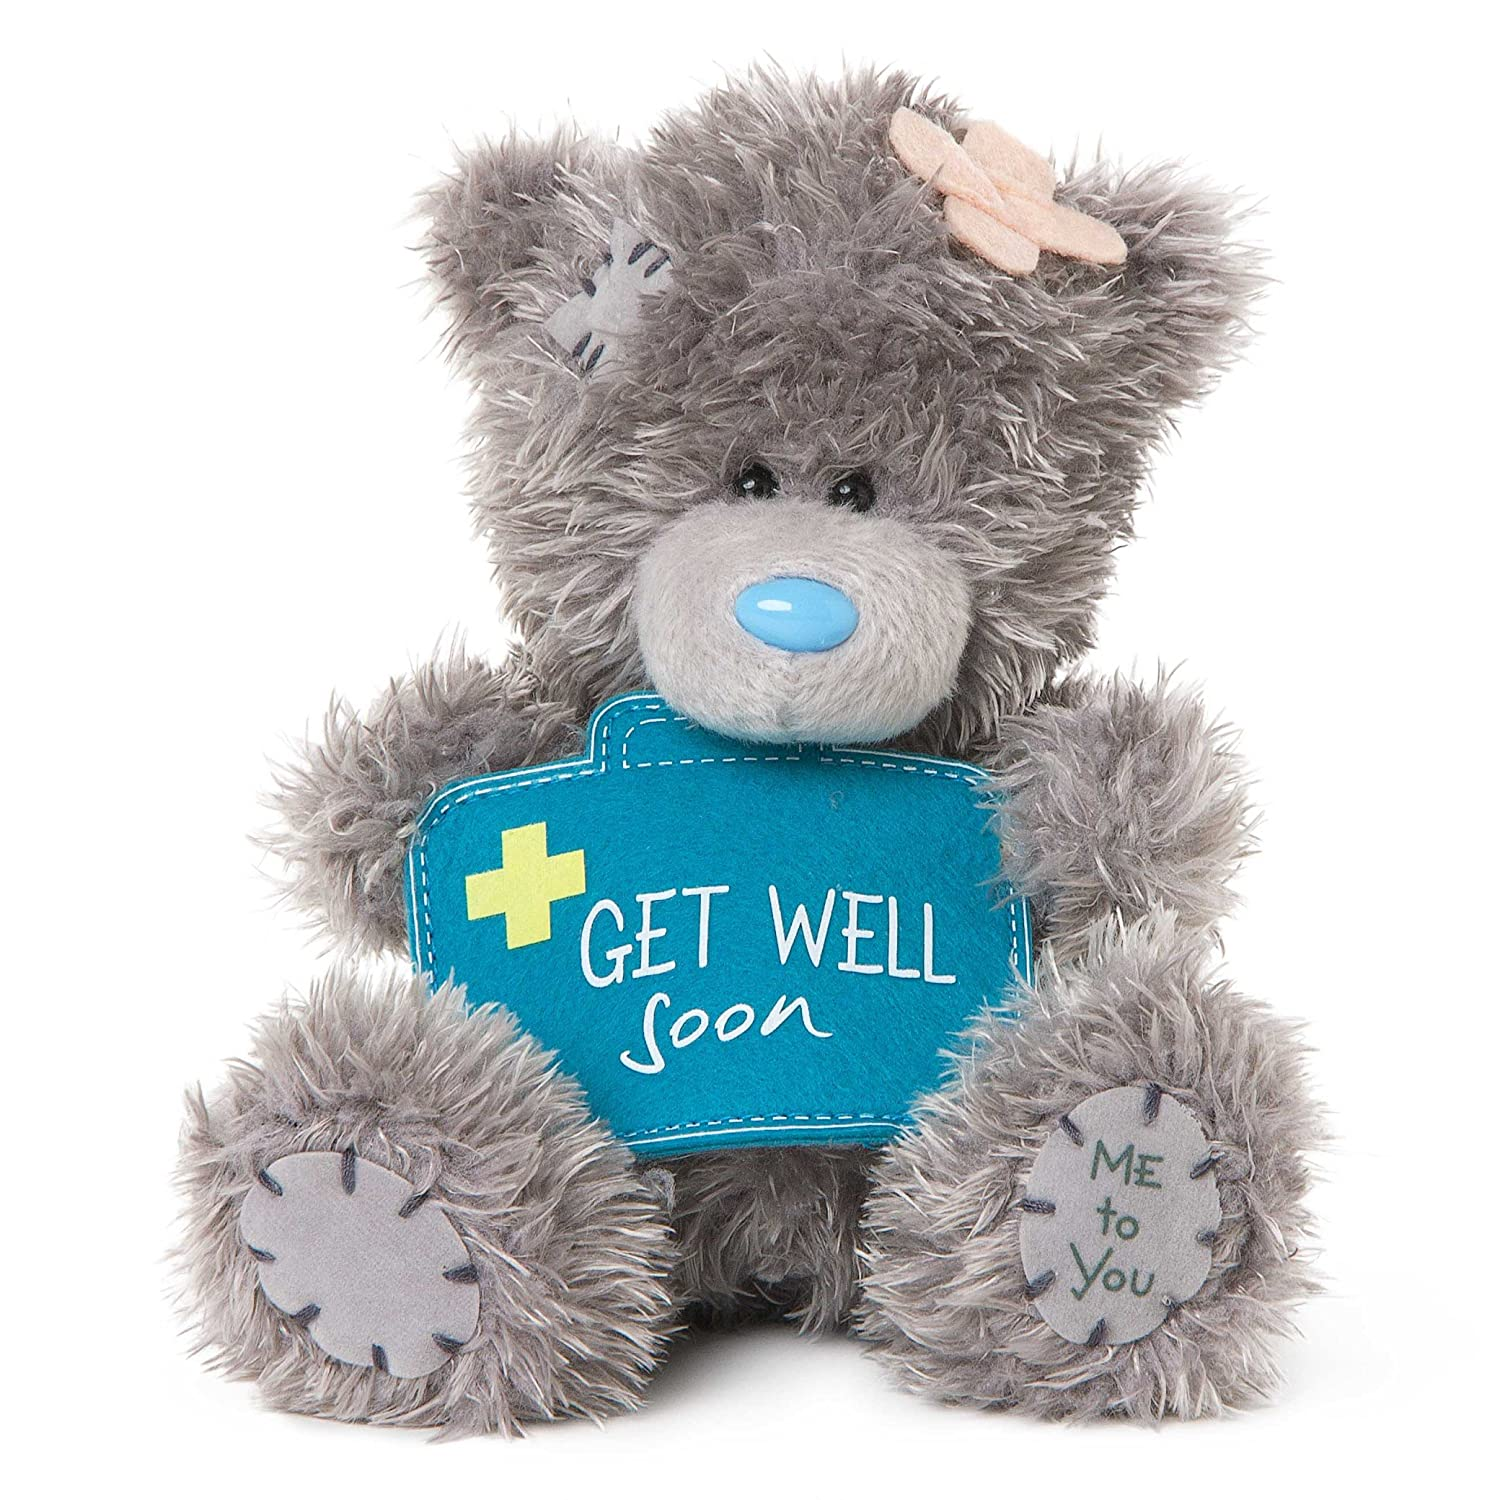 Me to You Get Well Soon Gift First Aid Kit Tatty Teddy Bear, Nylon/A Carte Blanche Greetings SG01W4076